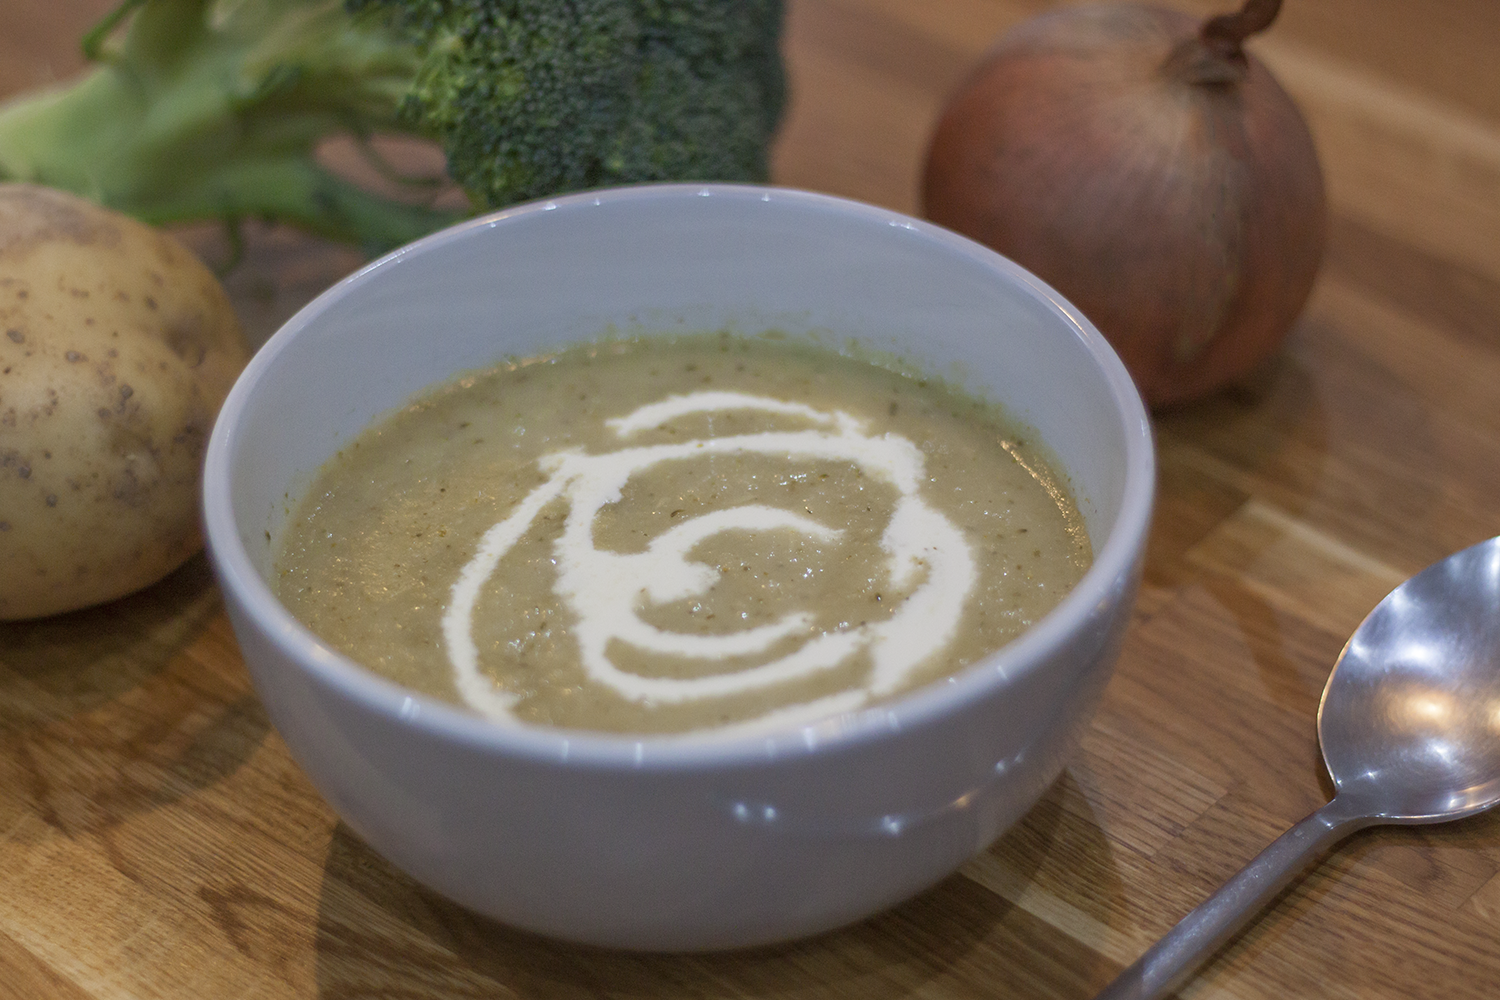 Bowl of broccoli soup with an onion, potato and broccoli behind